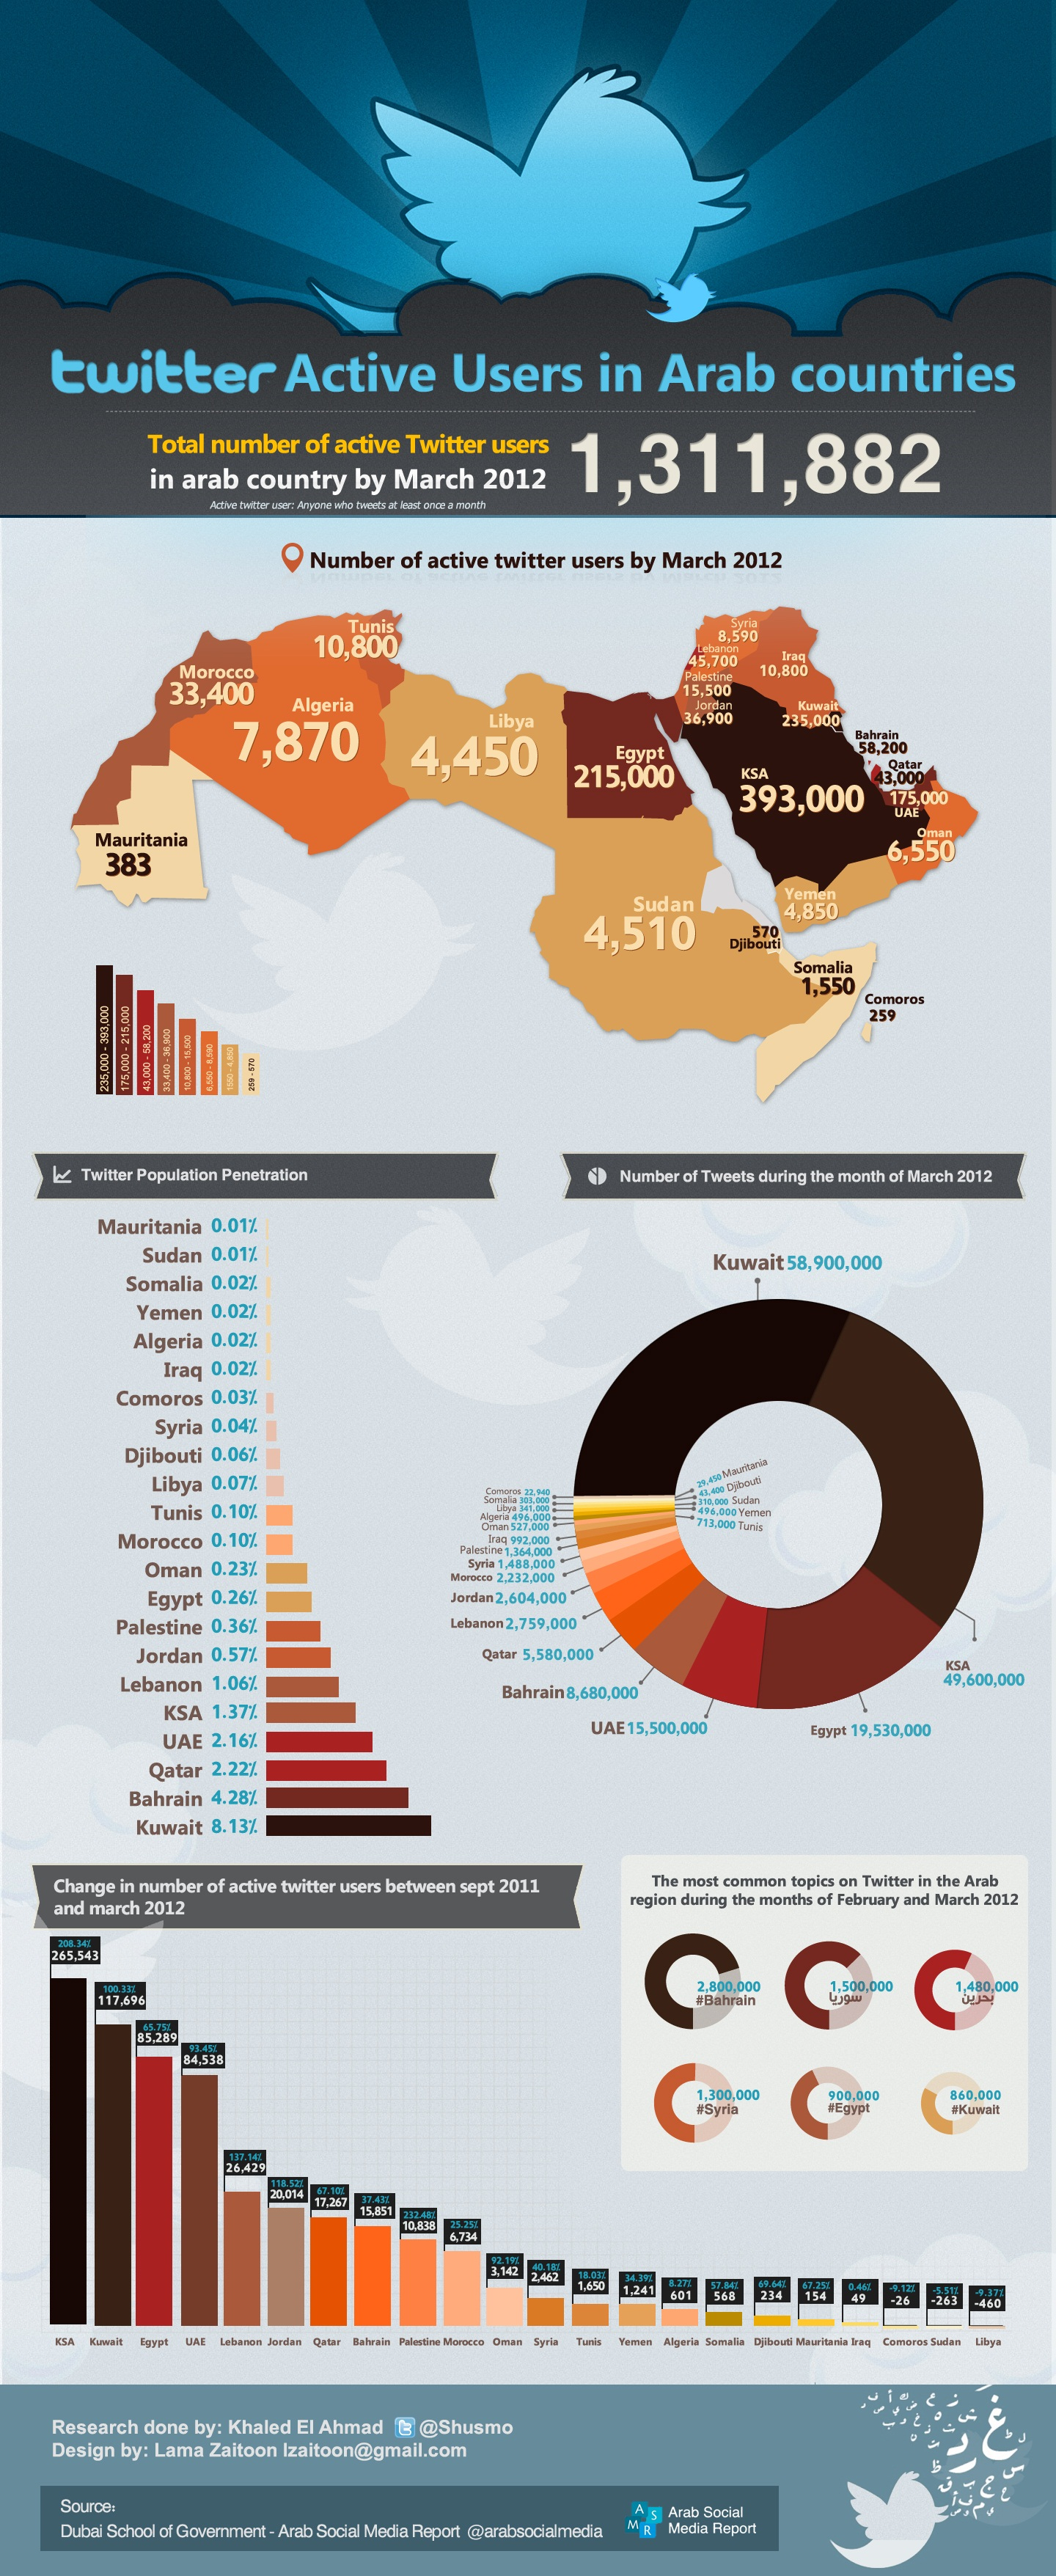 Active Twitter Users in Arab Countries March 2012 via visual.ly